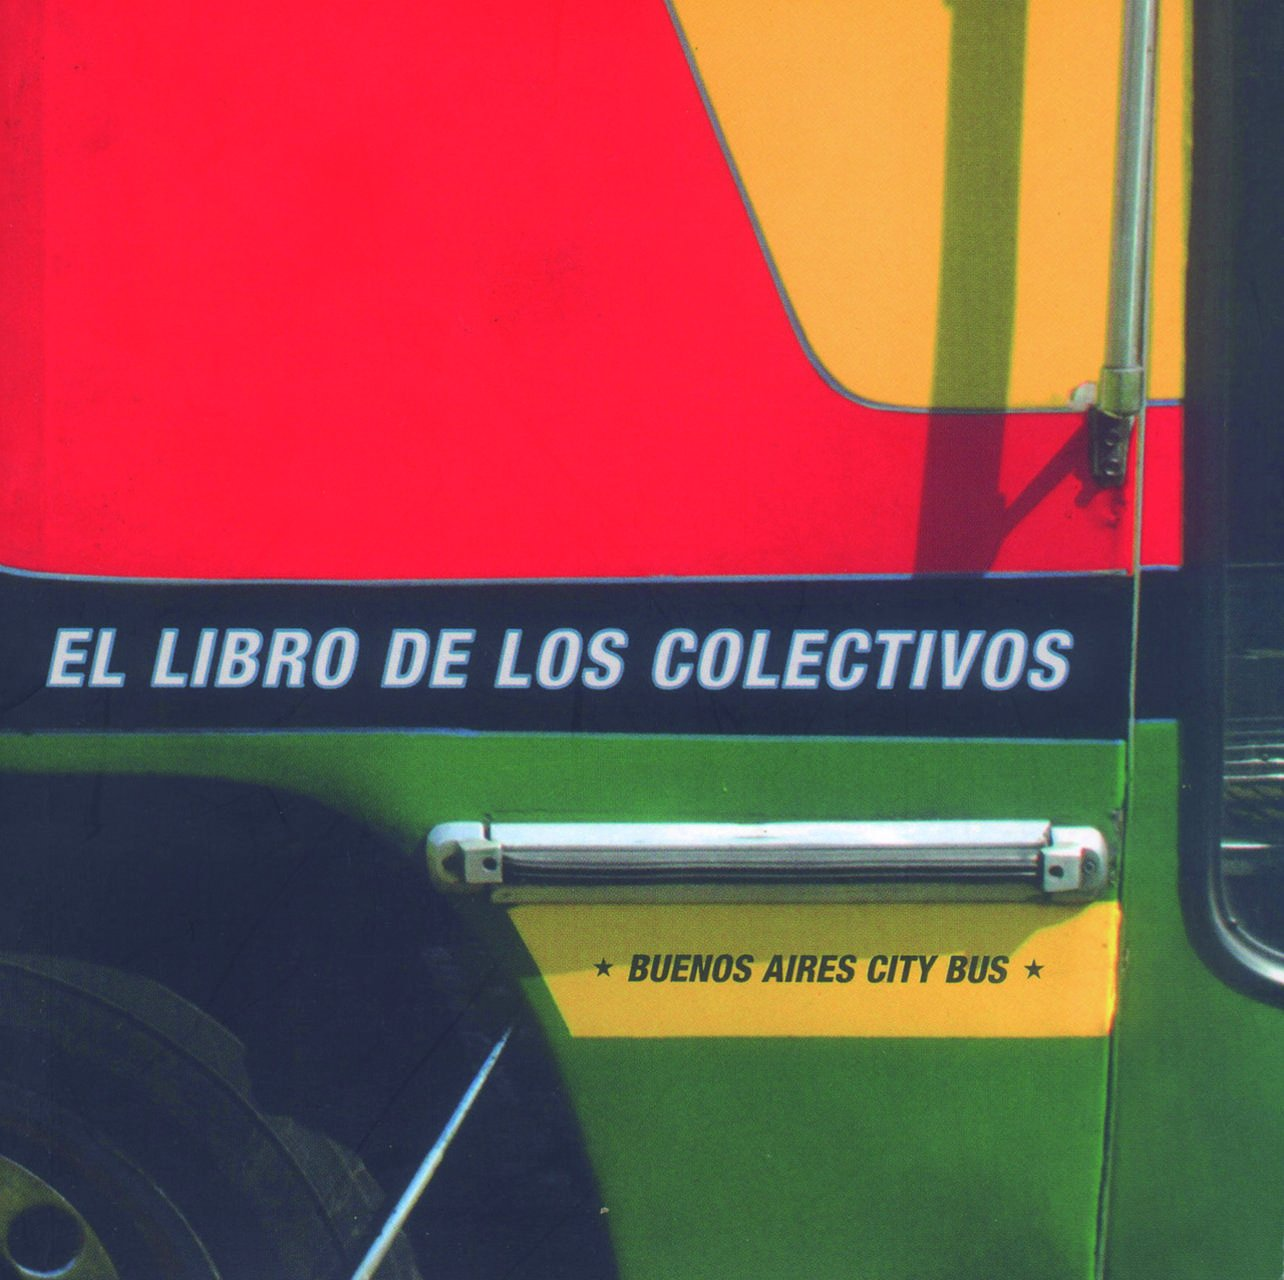 Buenos Aires City Bus: El libro de los colectivos: Guido Indij: 9789508891143: Amazon.com: Books